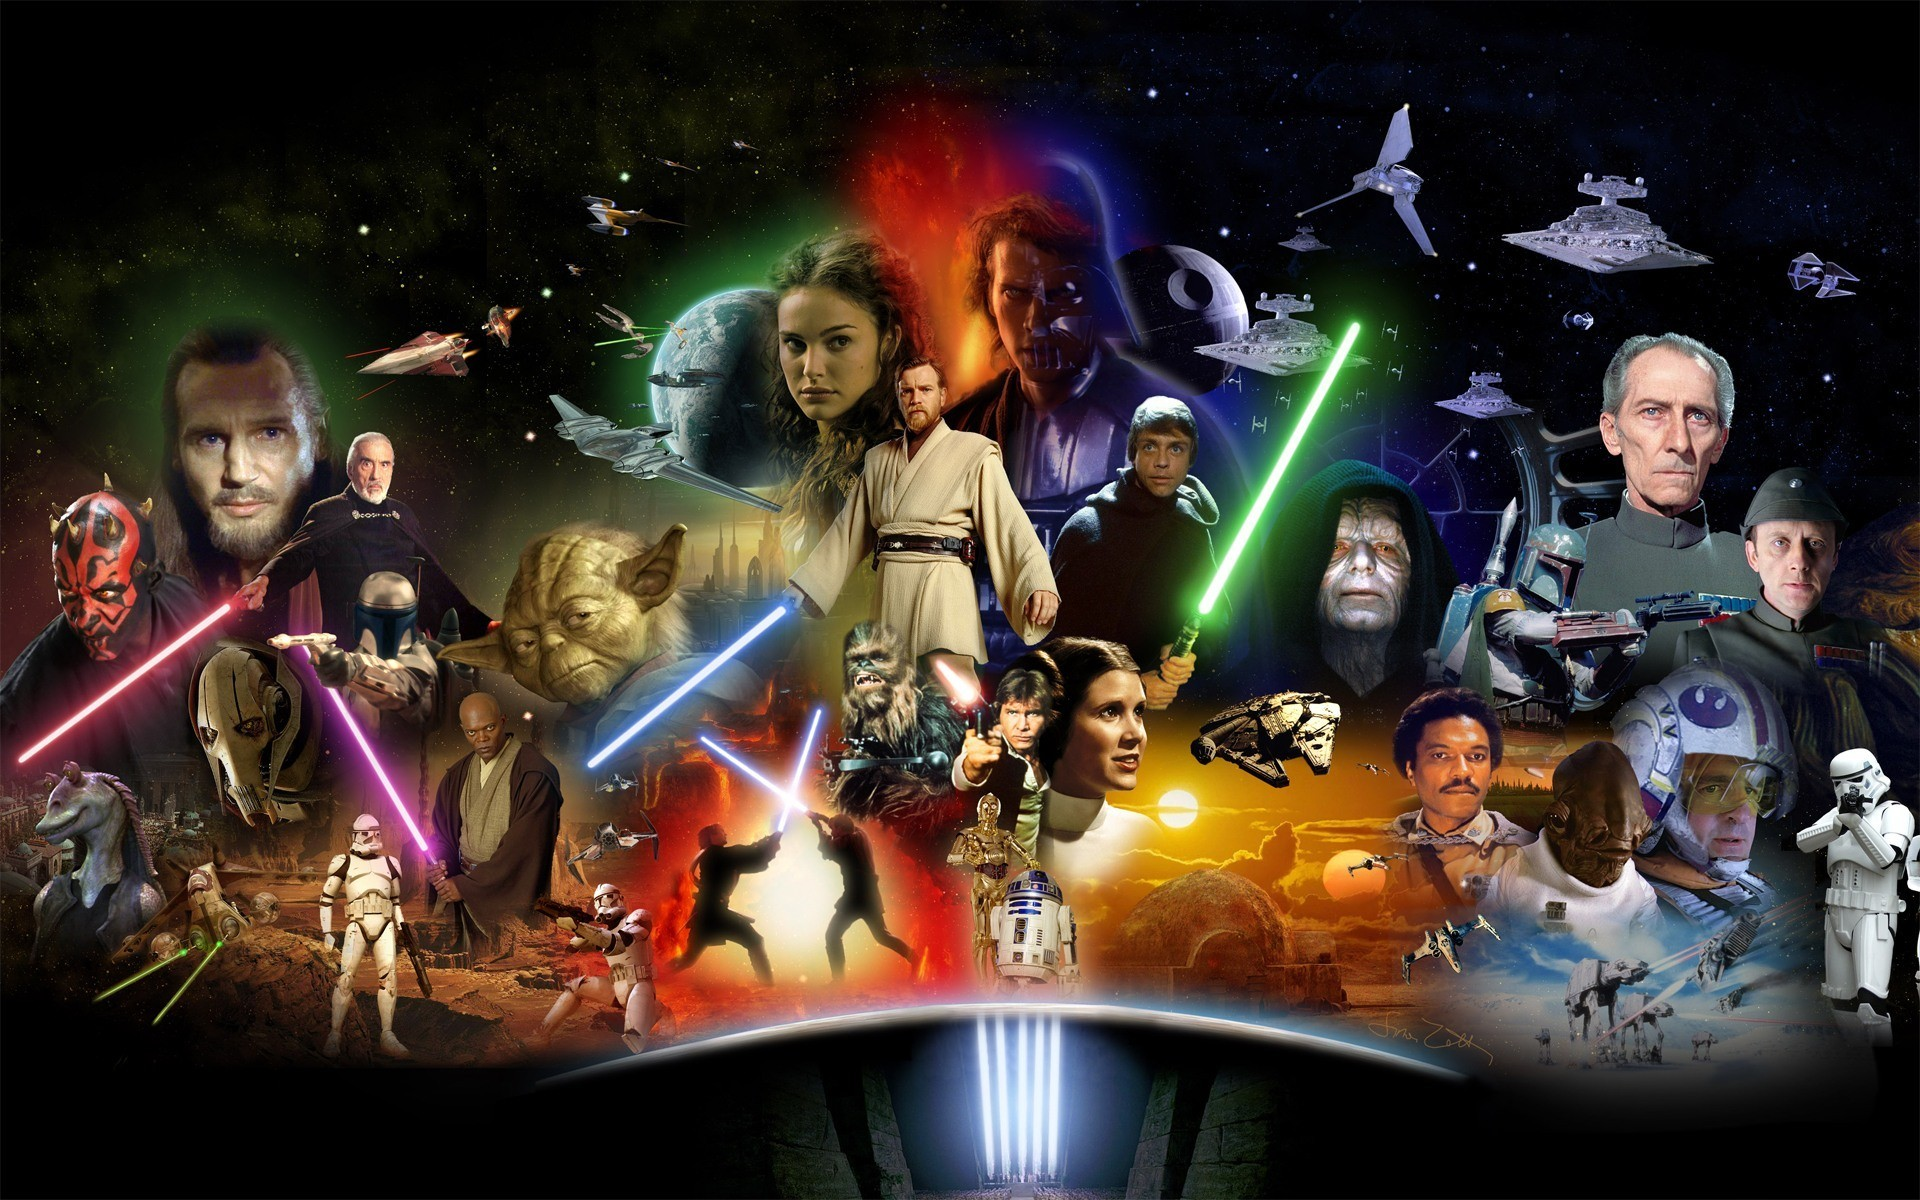 star wars informative speech Star wars informative speech the most inspiring speech: the wisdom of a third grade dropout will change your life | rick rigsby - duration: 10:22 goalcast 5,525,520 views.